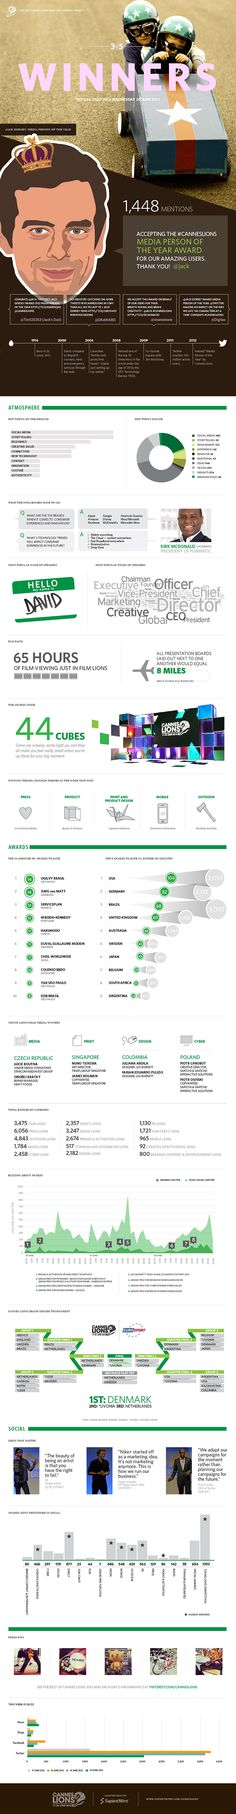 Cannes Lions Infographic: Winners